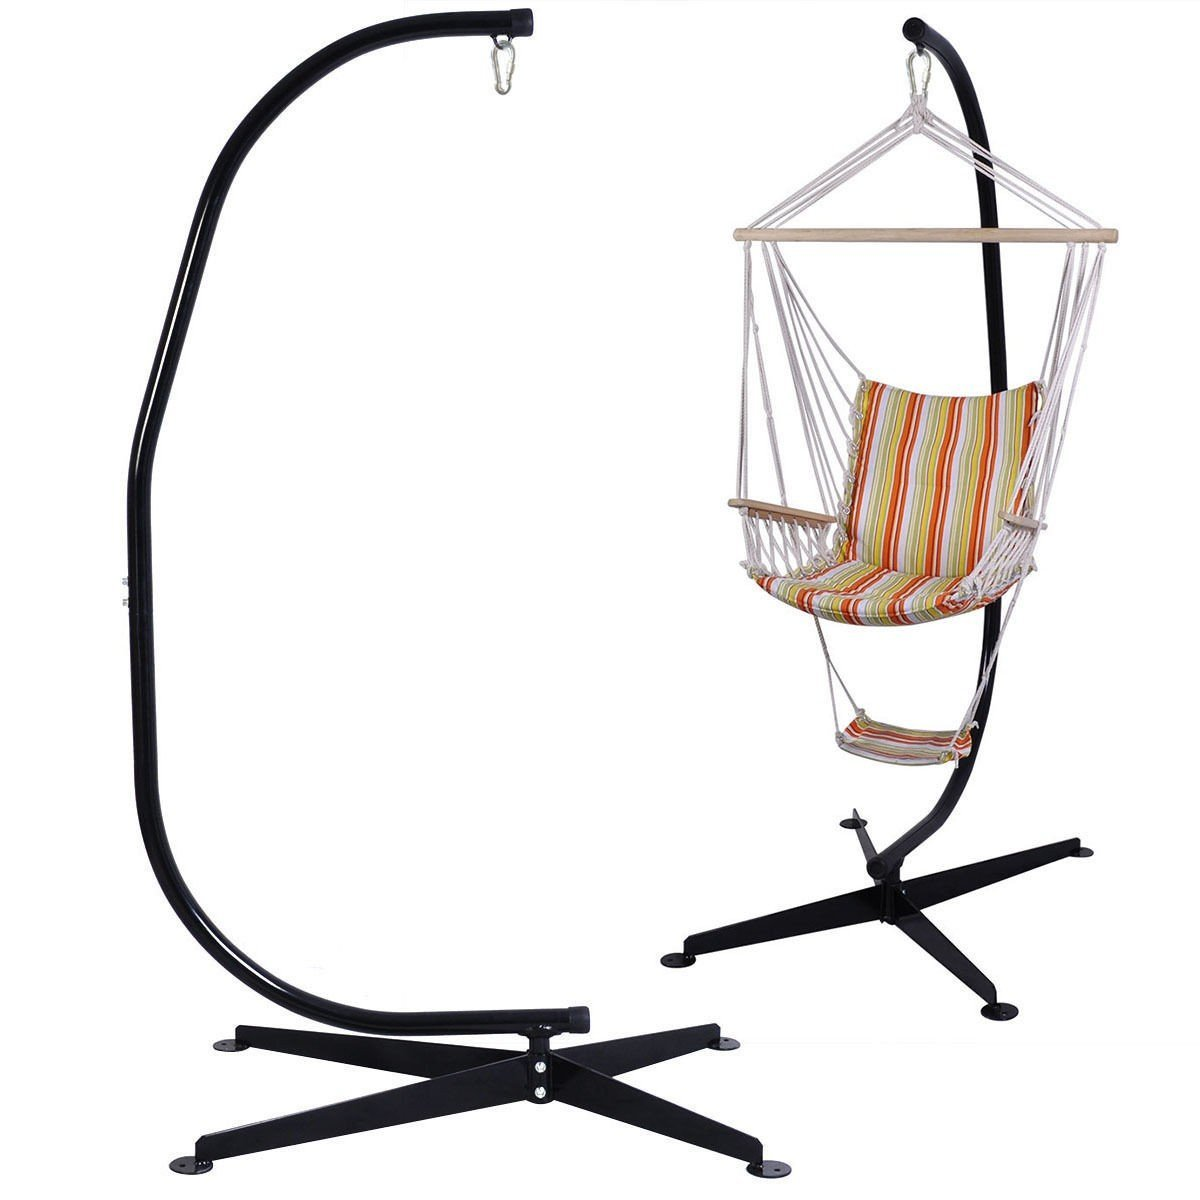 Solid Steel C Hammock Frame Stand Construction Hammock Air Porch Swing Chair New - Ideal For All Indoor And Outdoor Surface - Works With Most Air Chairs -Black Powder Coated Rust Resistant Finish